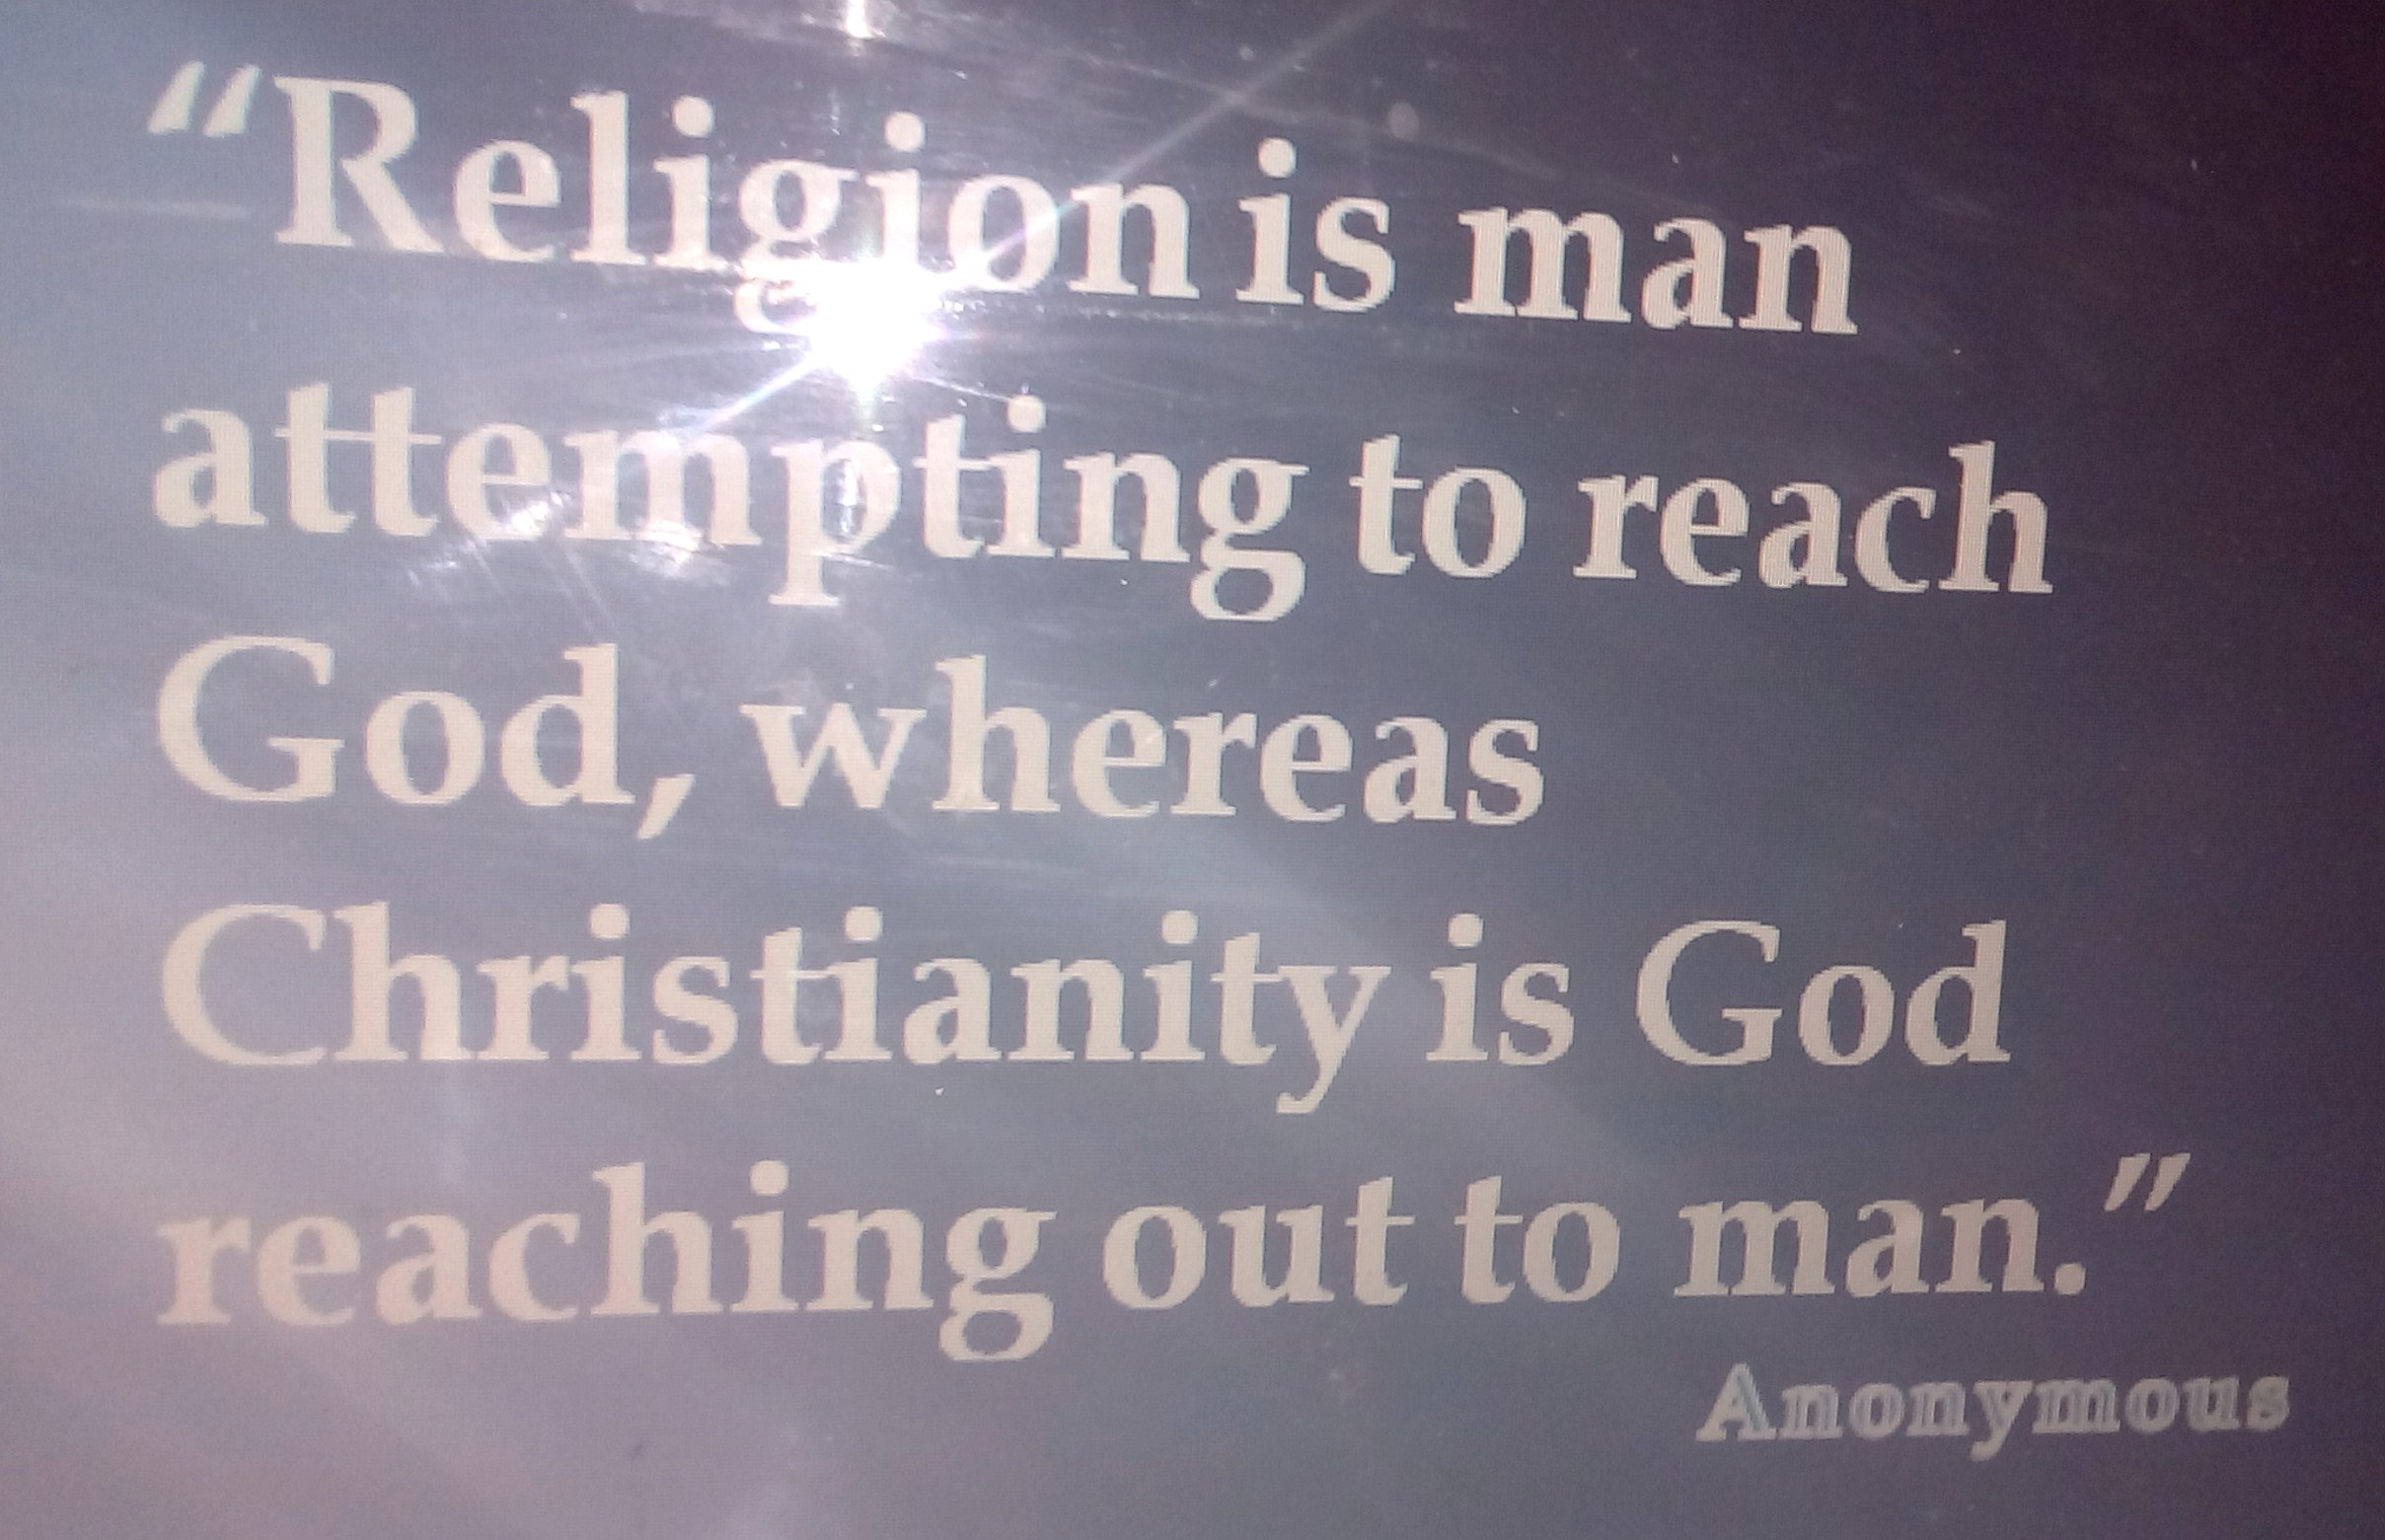 RELIGION AND CHRISTIANITY